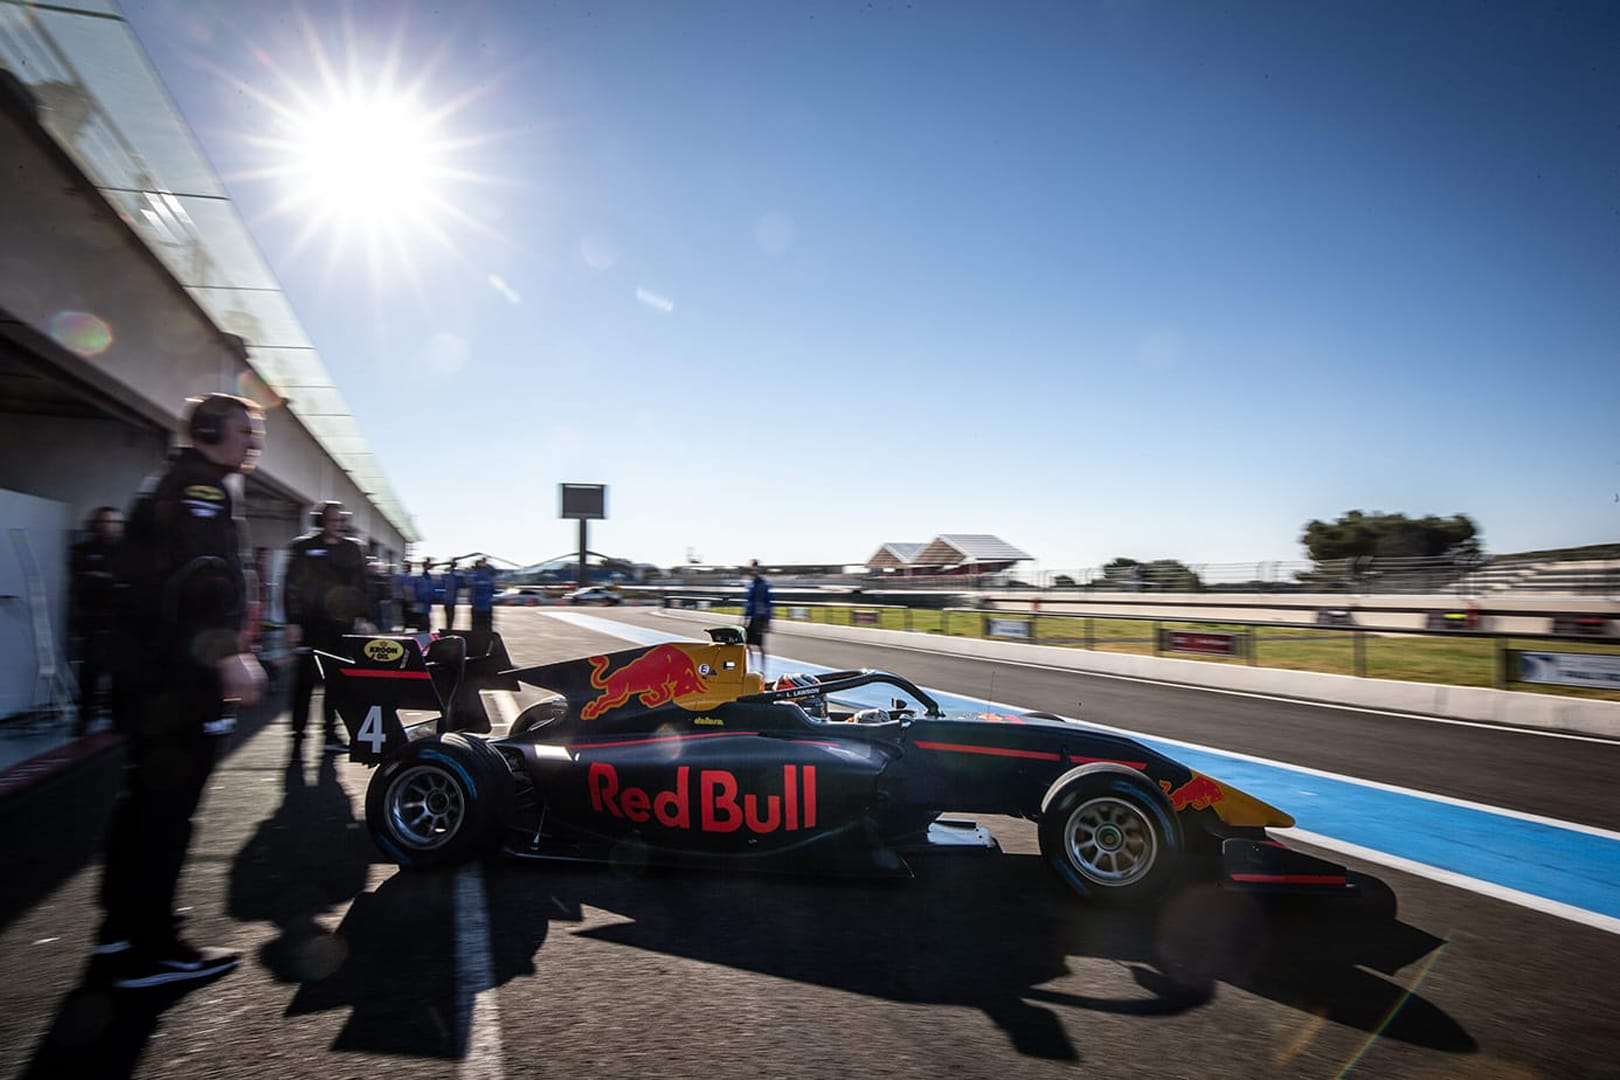 Lawson enjoys first run in Red Bull colours